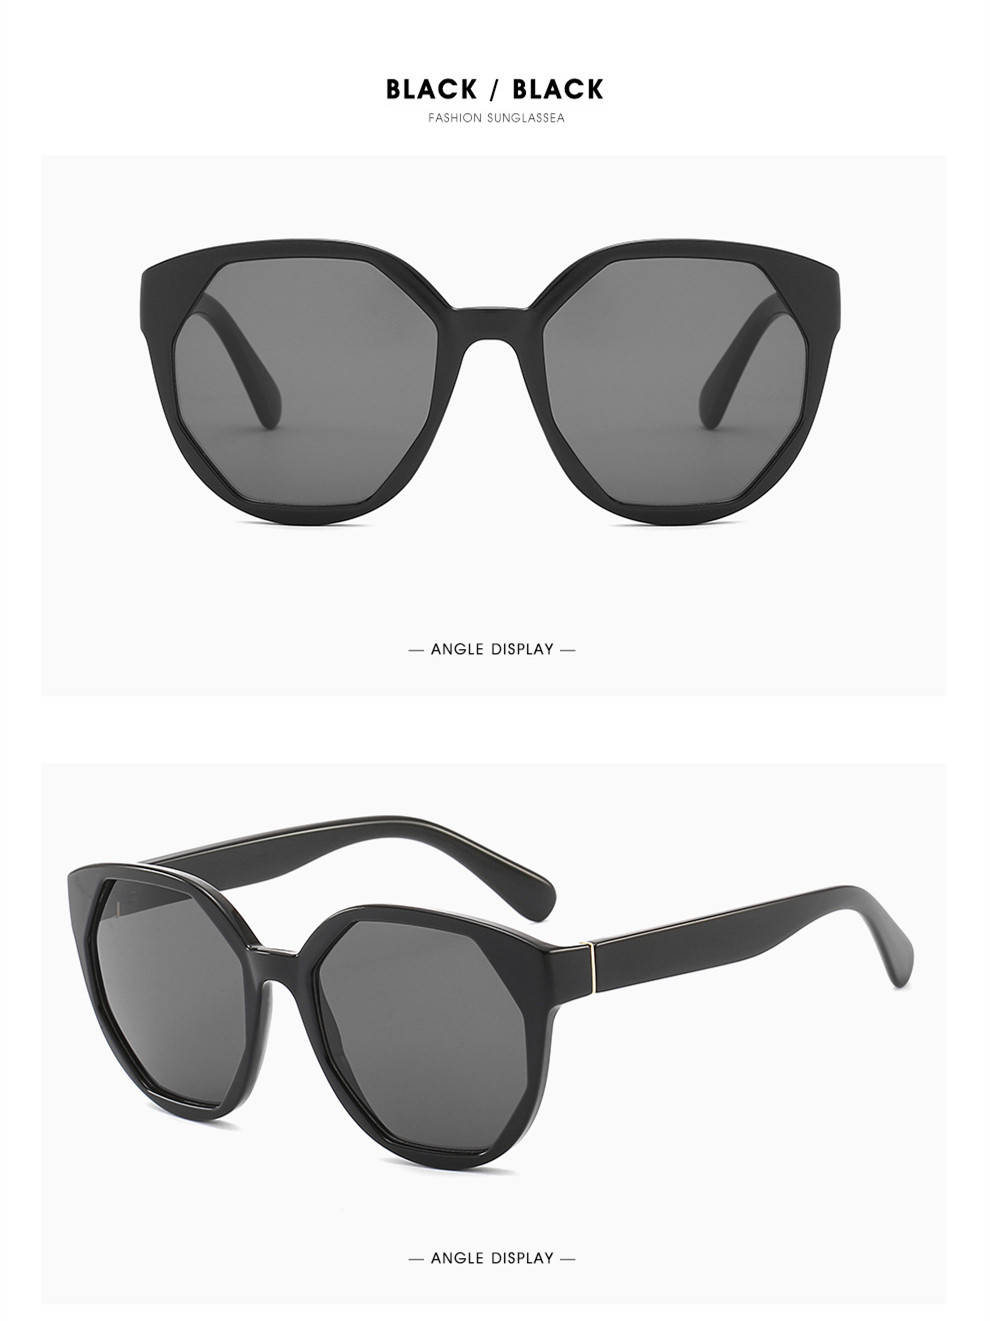 6006e6928e Comprar ahora. Imwete Oversized Sunglasses Women Retro Brand Designer  Gradient Sun Glasses Men Vintage Shades Eyewear Big Frame Glasses